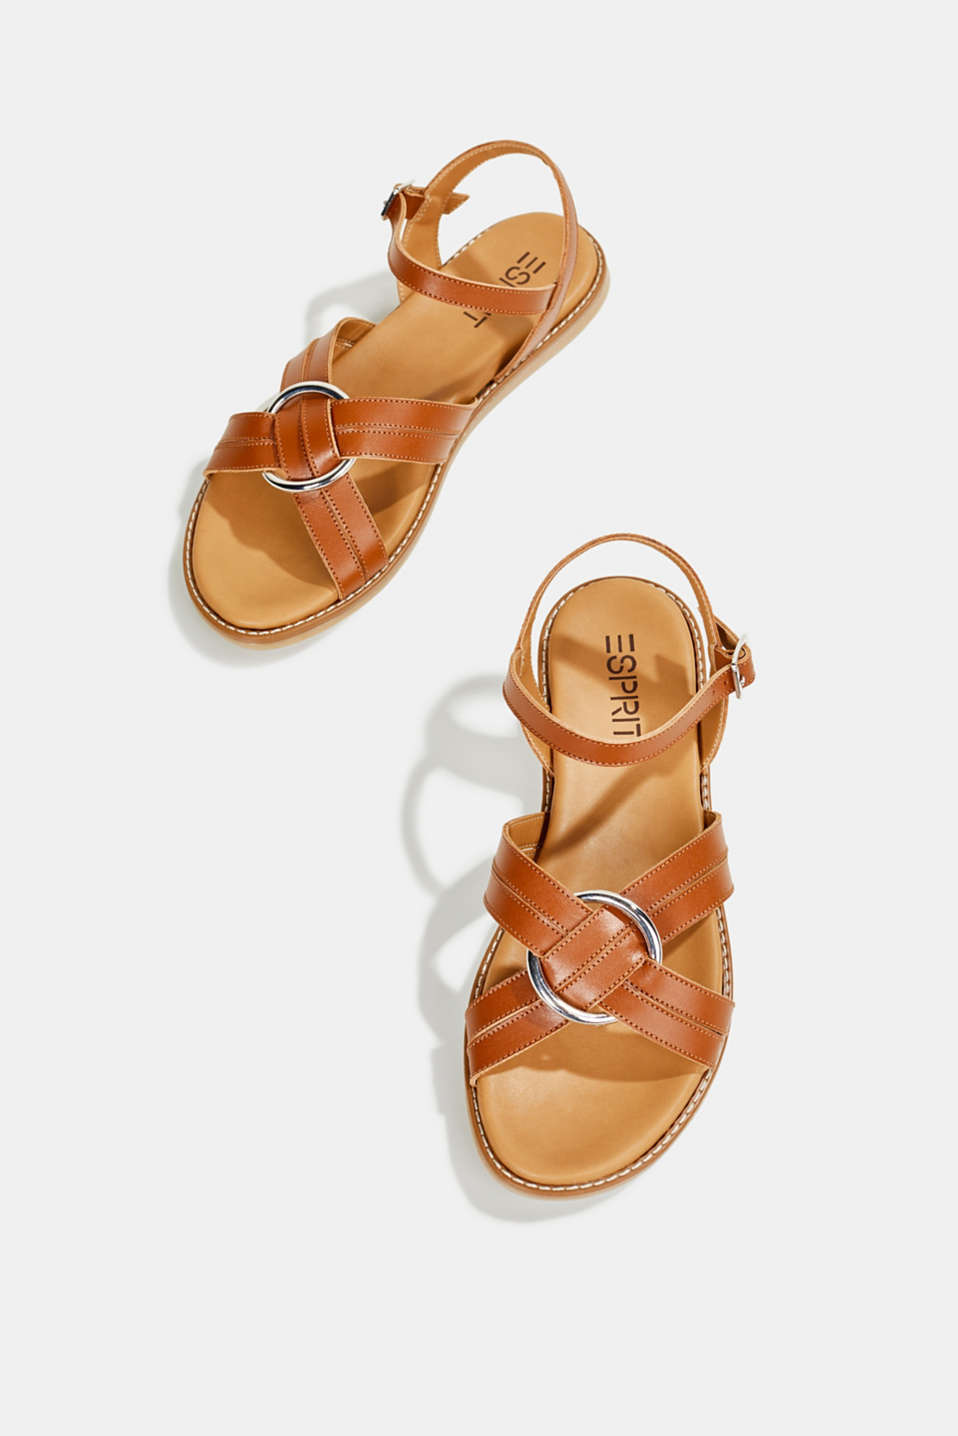 Sandals with crossed-over straps, CARAMEL, detail image number 1